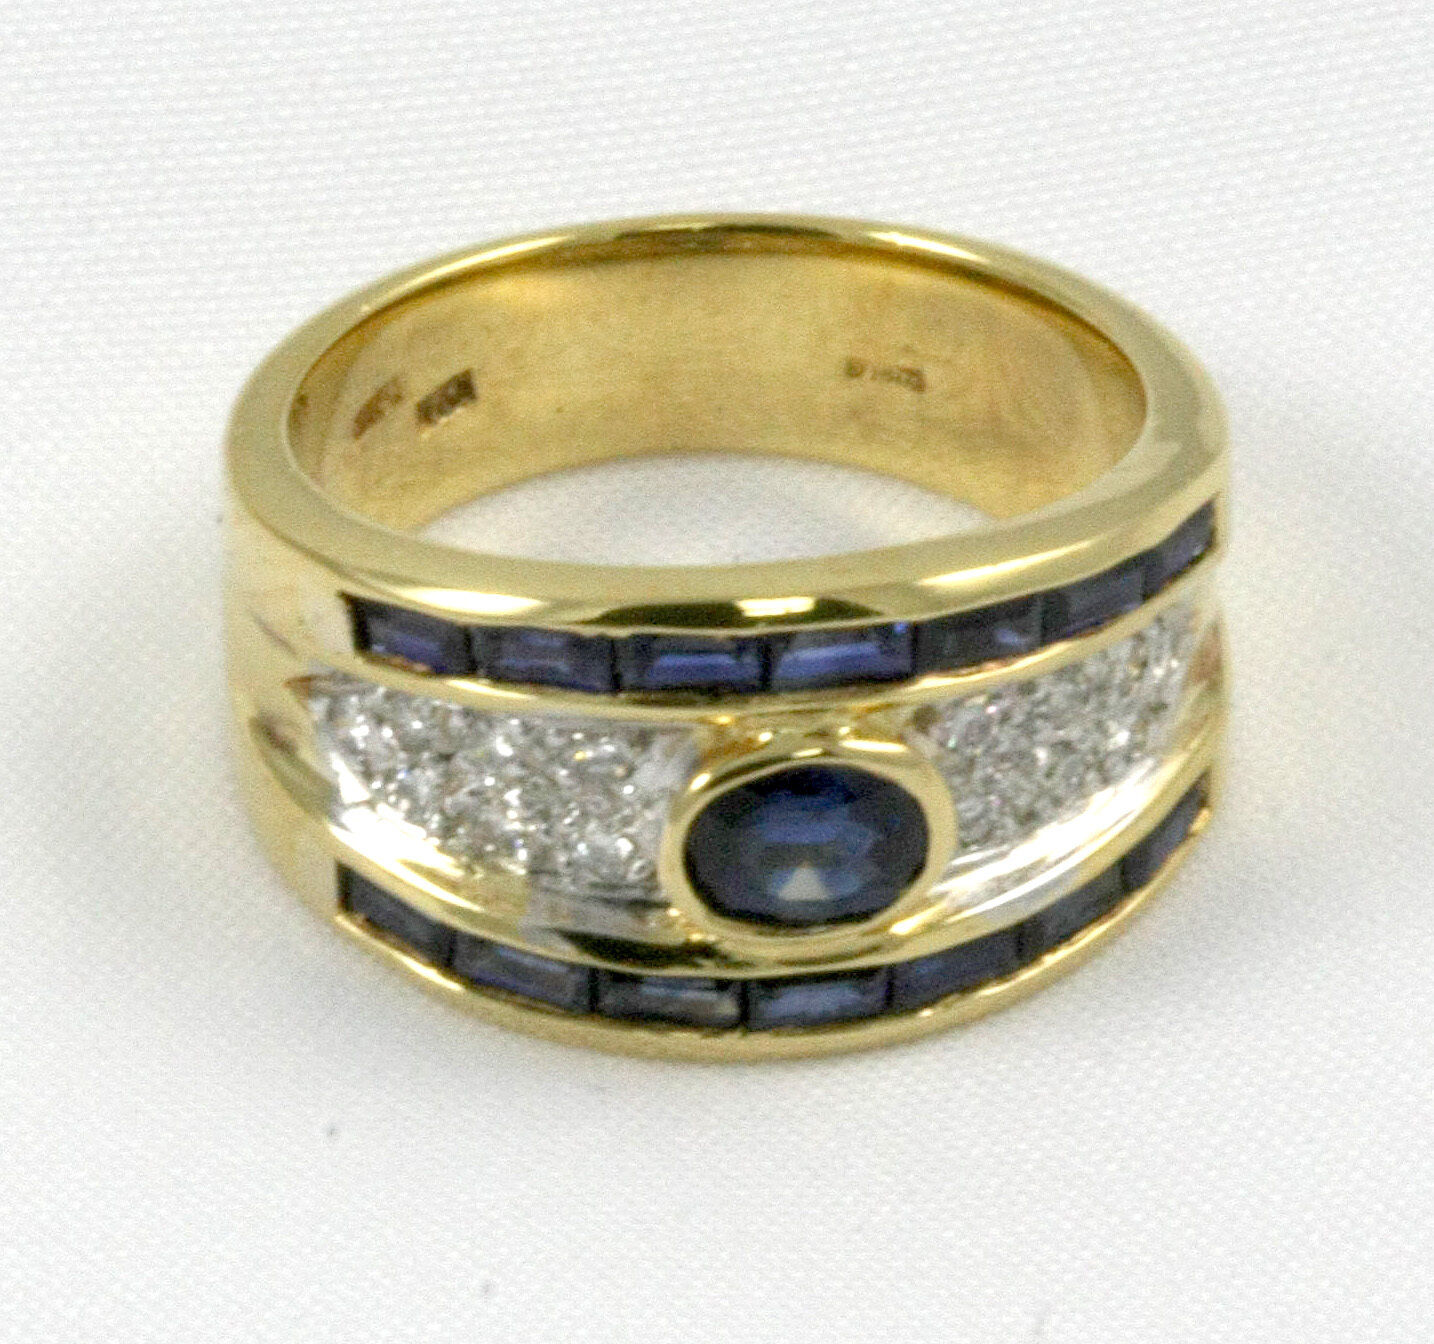 Sapphire Ring 18k YG with 1.56ct Sapphires + 0.19ct Diamonds  CLOSE OUT